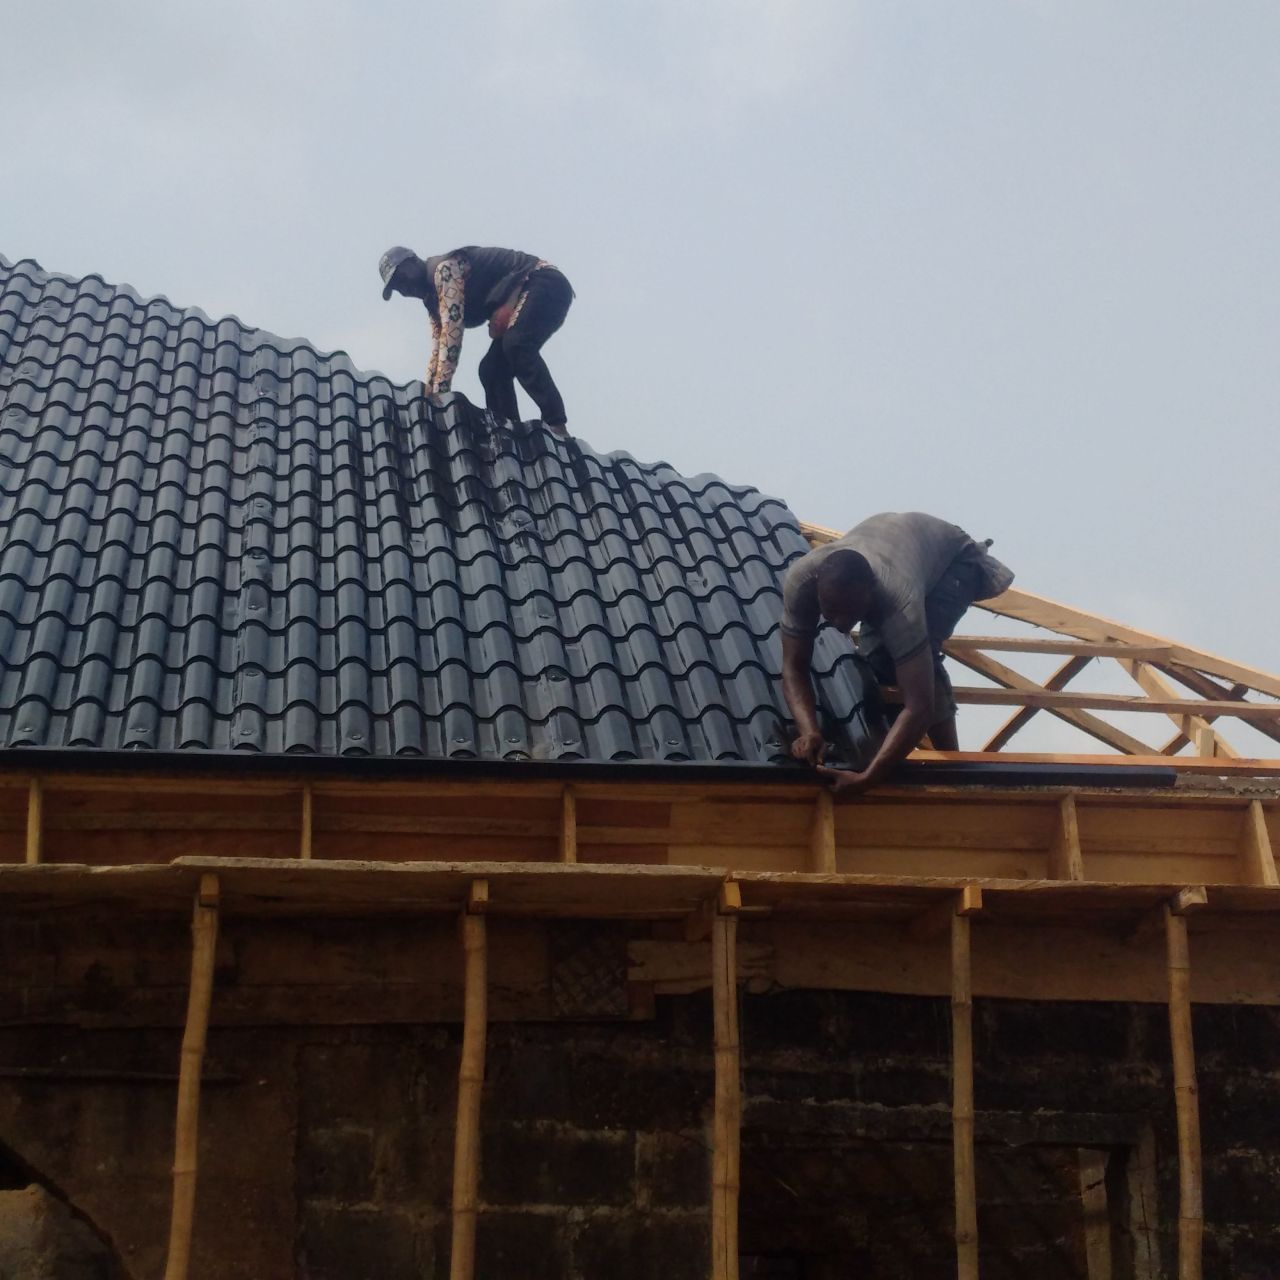 Best Quality Roofing Sheets Current Prices Of All Roofing Sheets In Nigeria 2019 Free Classifieds In Nigeria